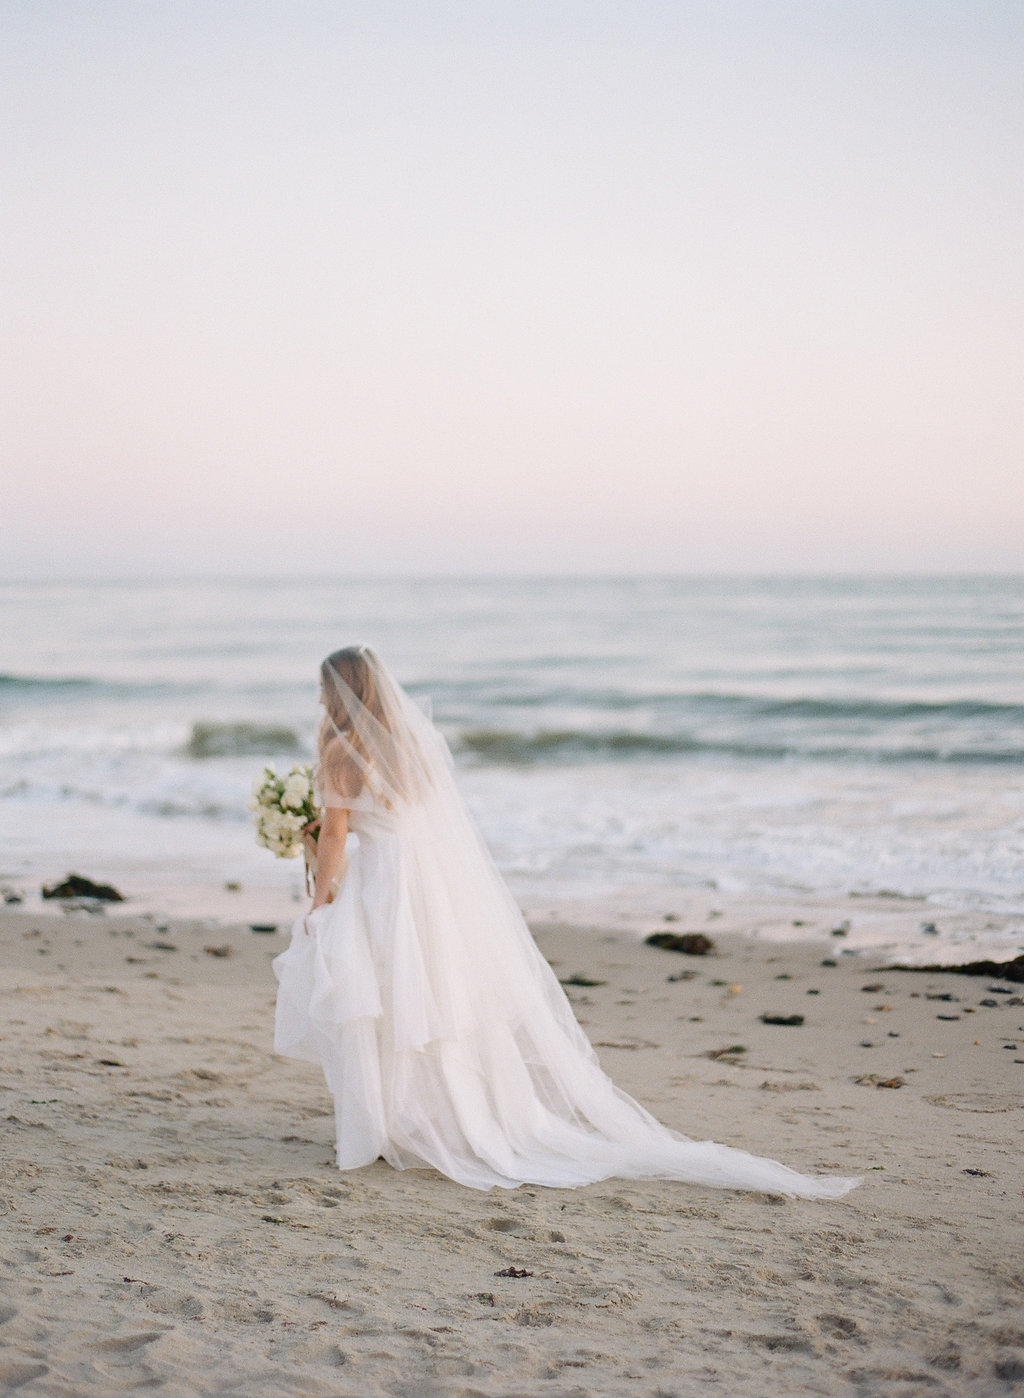 California beach elopement wedding dress